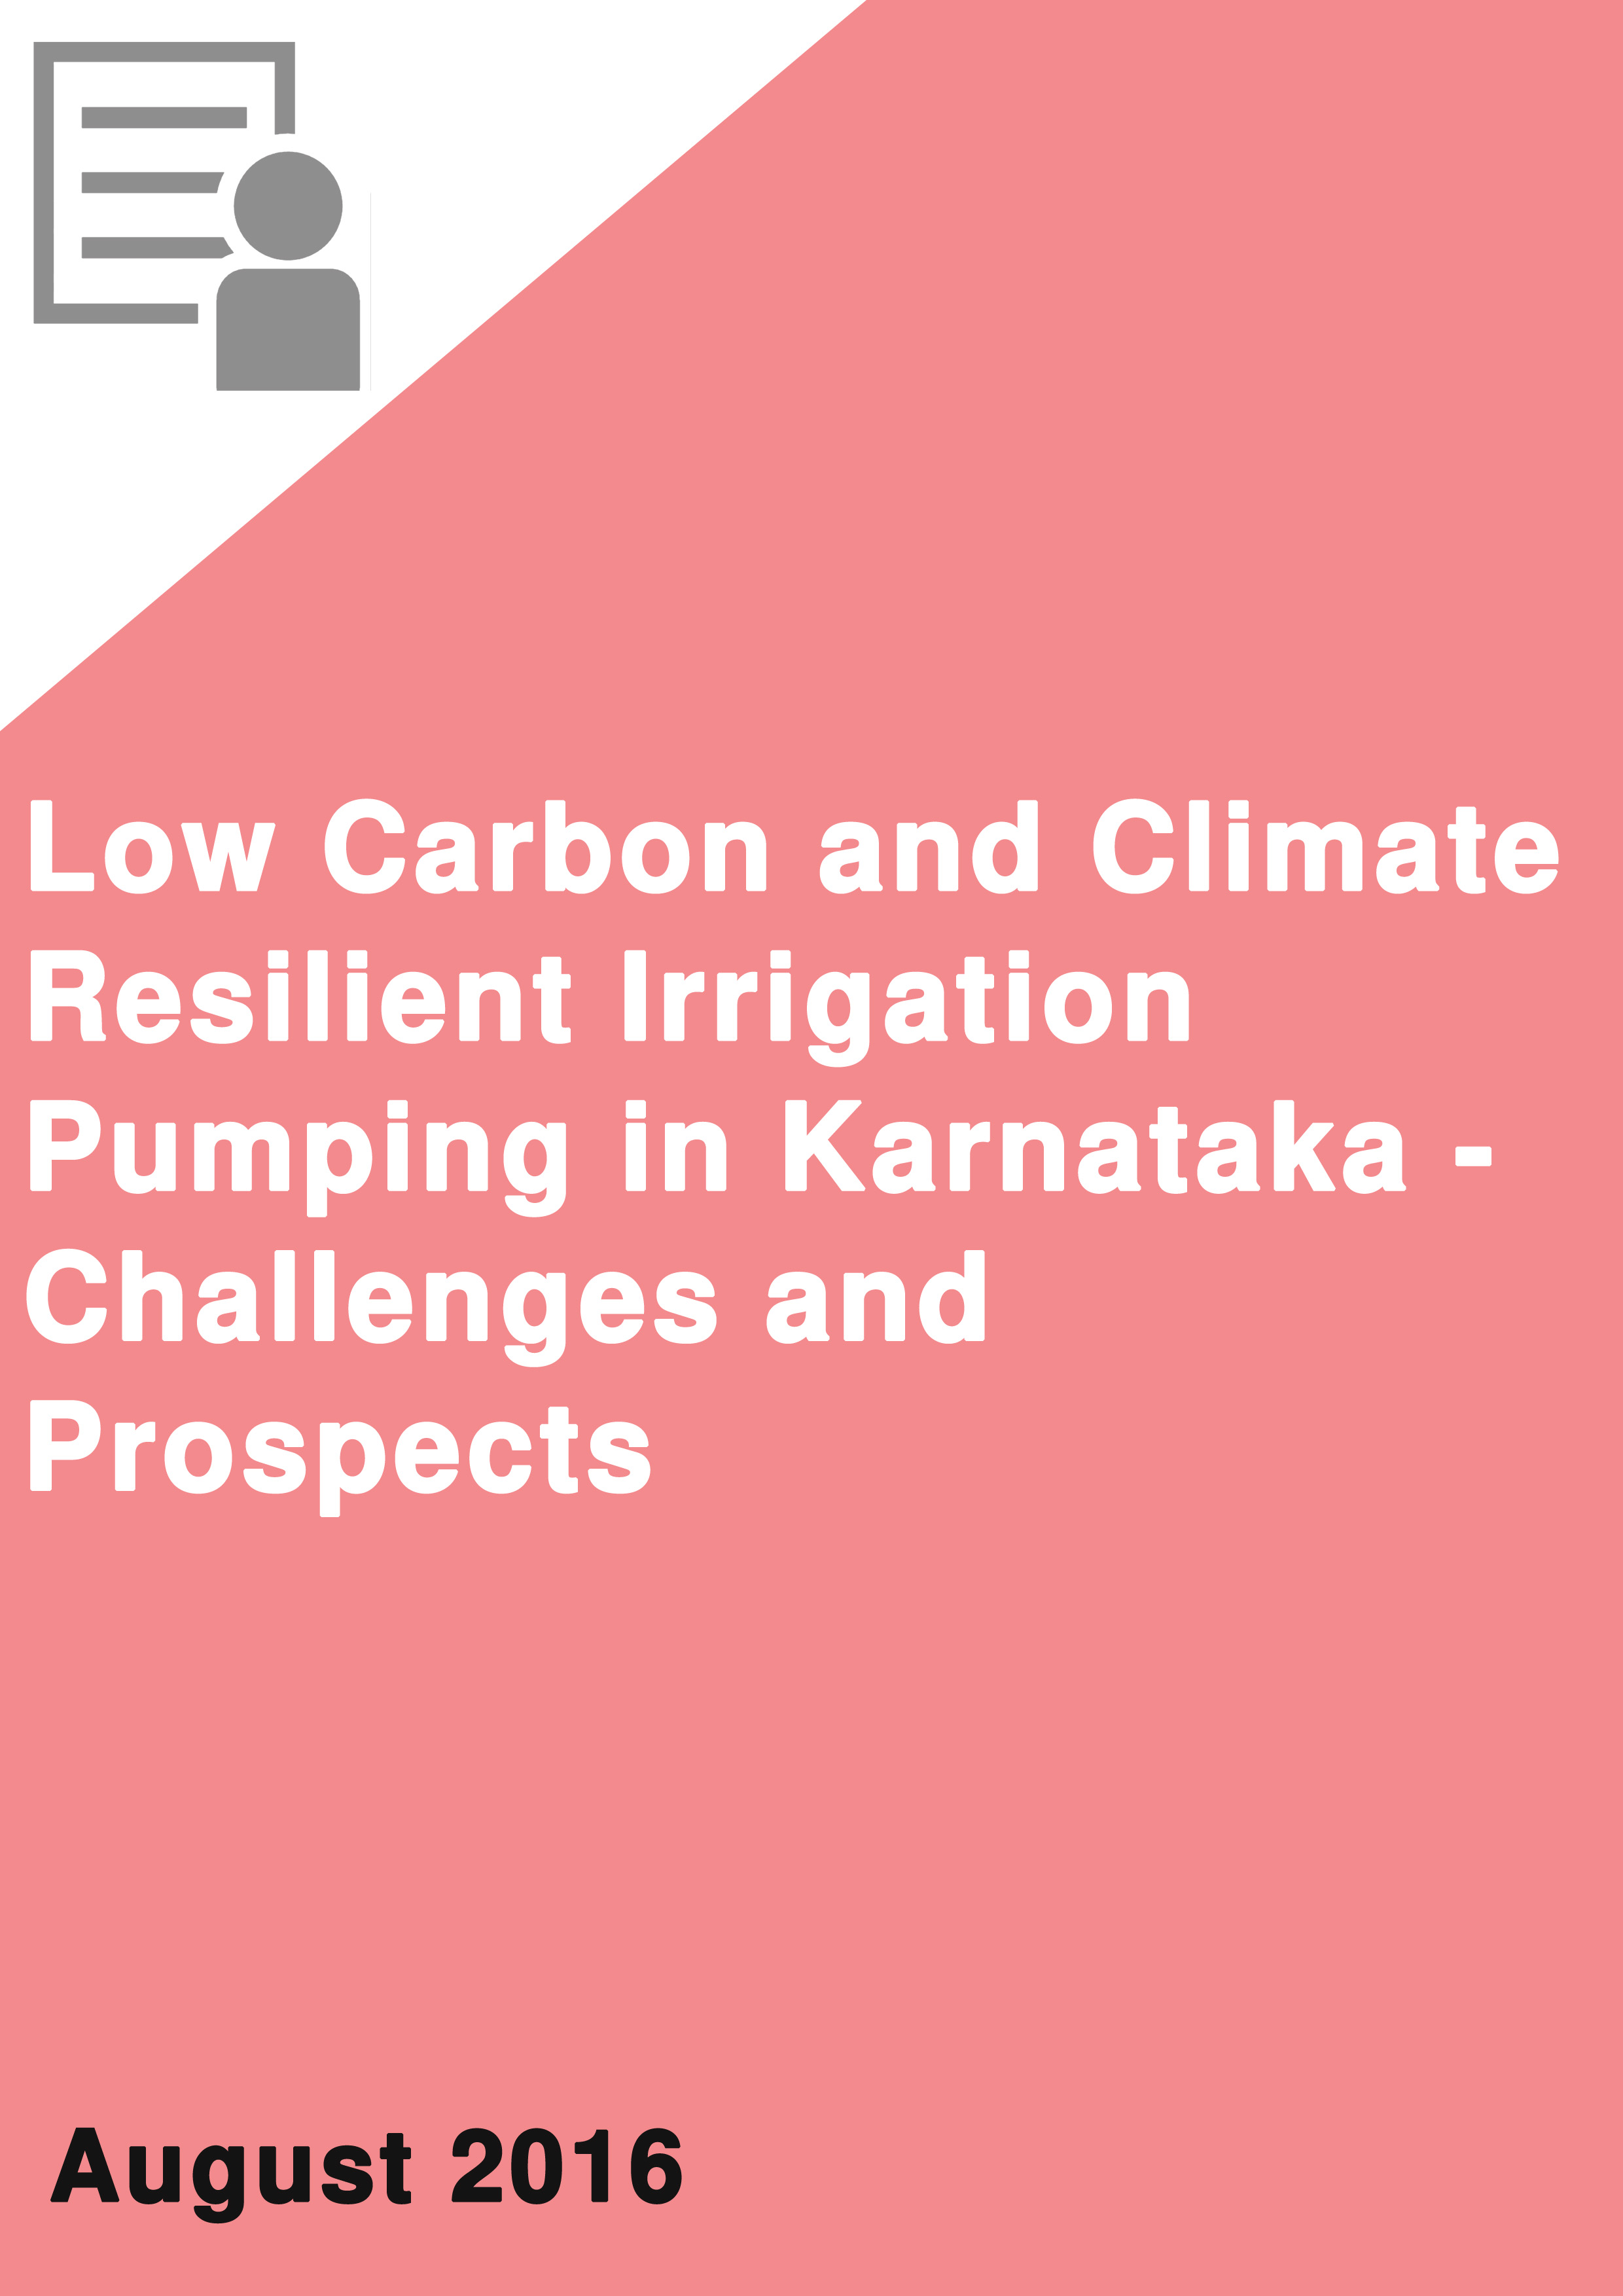 Low Carbon and Climate Resilient Irrigation Pumping in Karnataka - Challenges and Prospects